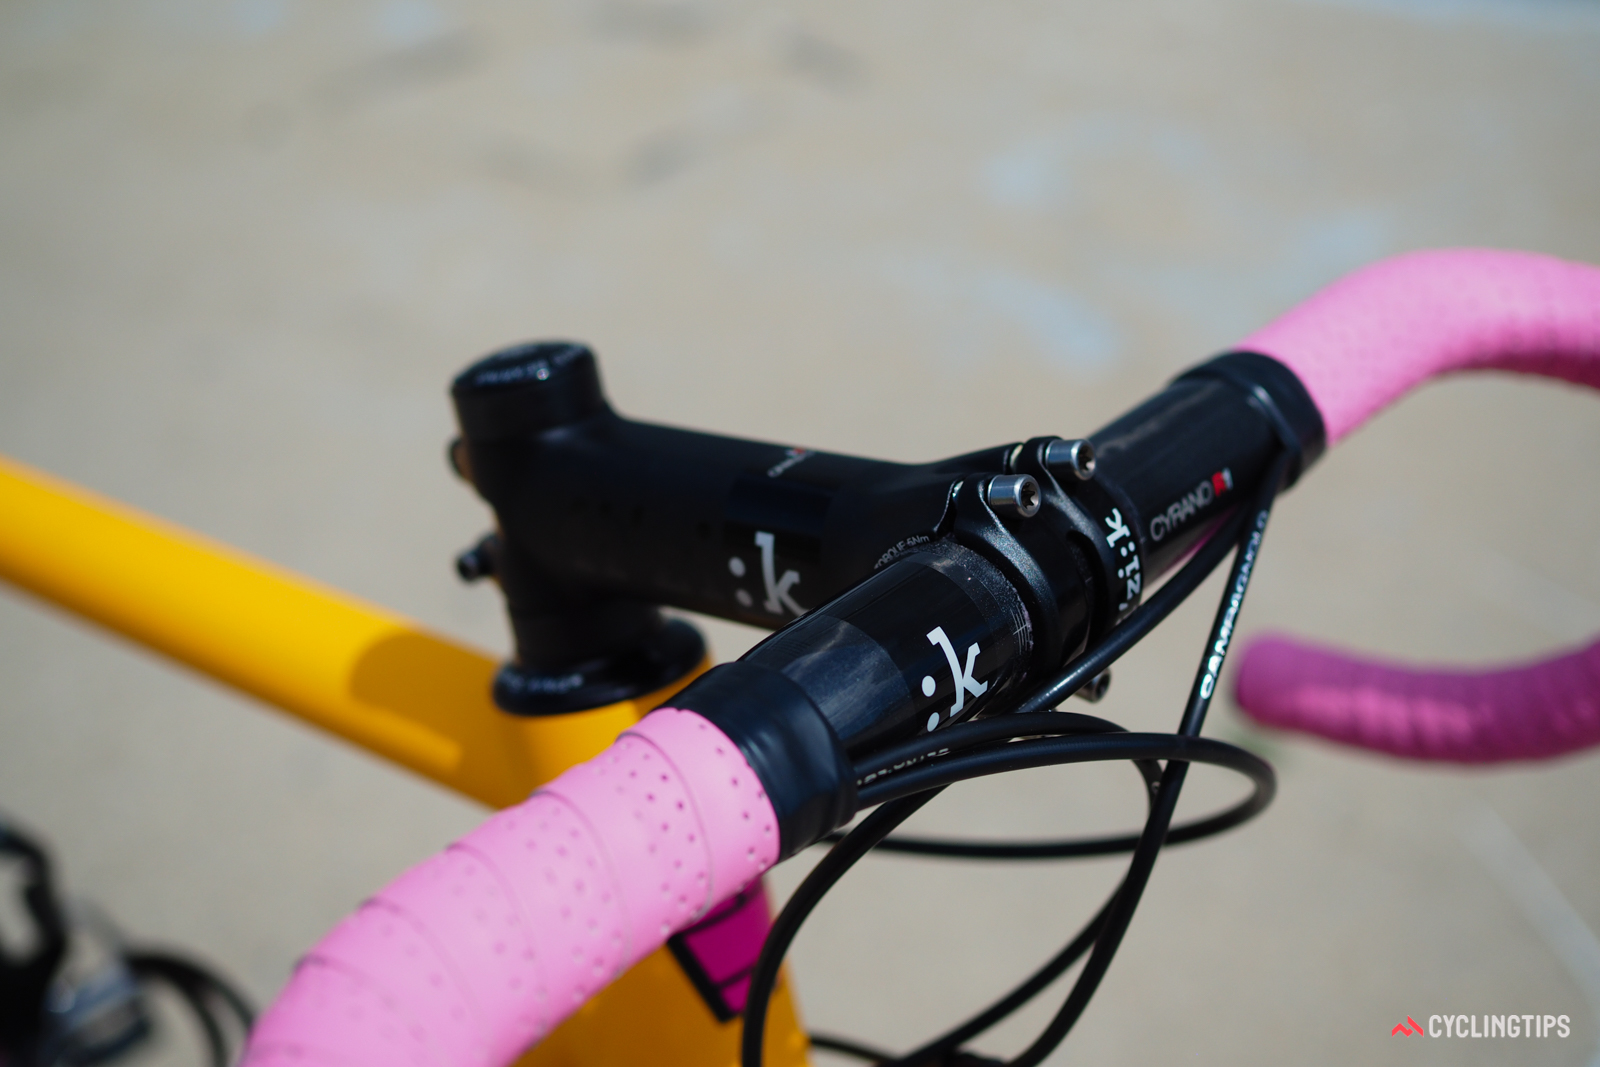 Fi'zi:k offers the Cyrano R1 carbon handlebar in several different bends to suit your preferences.